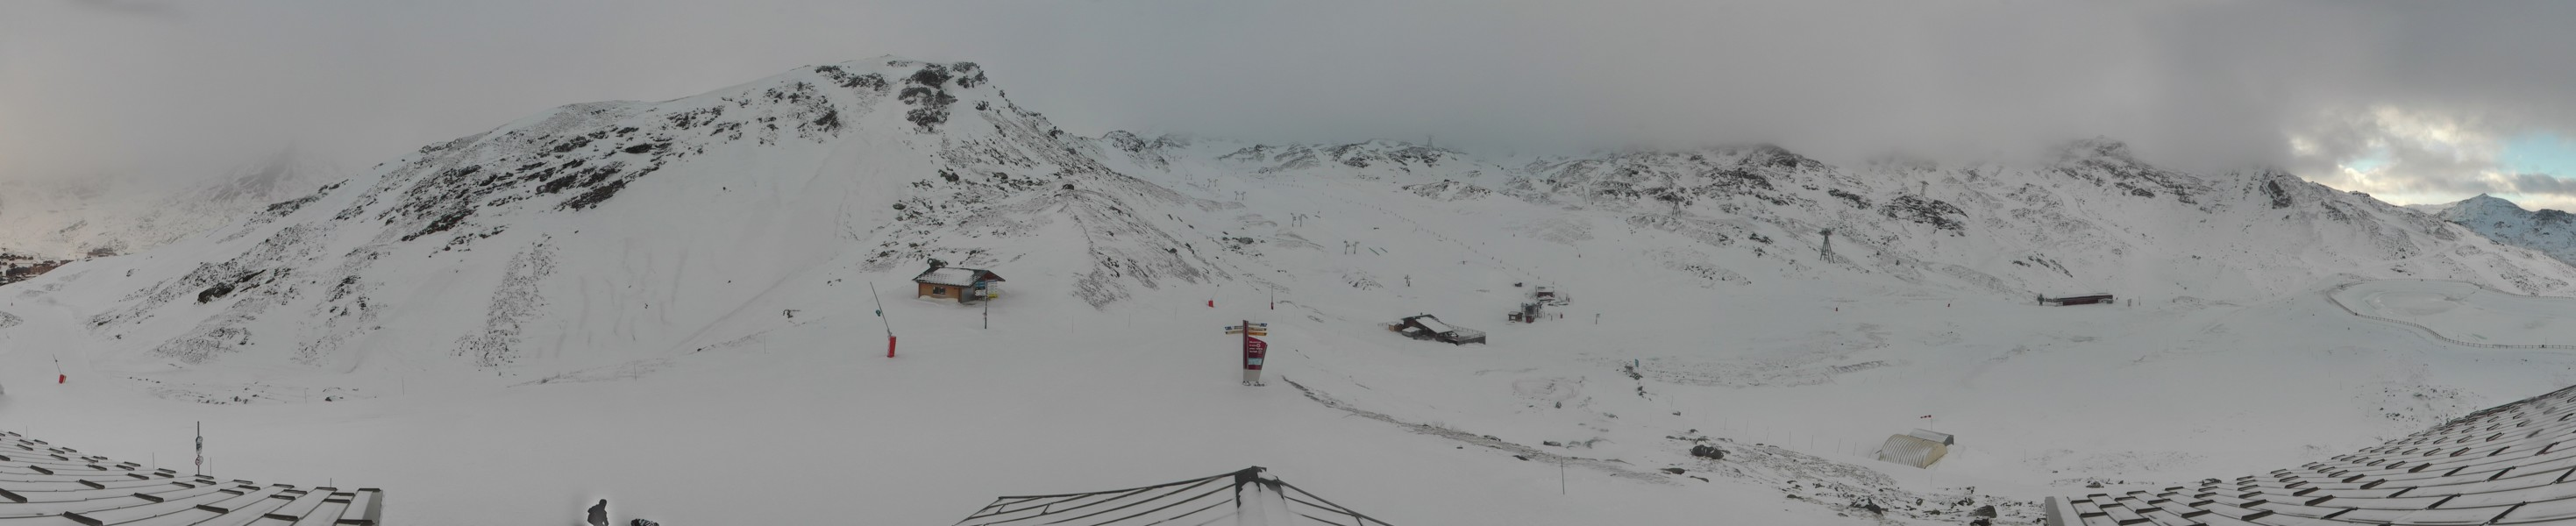 Webcam - Val Thorens